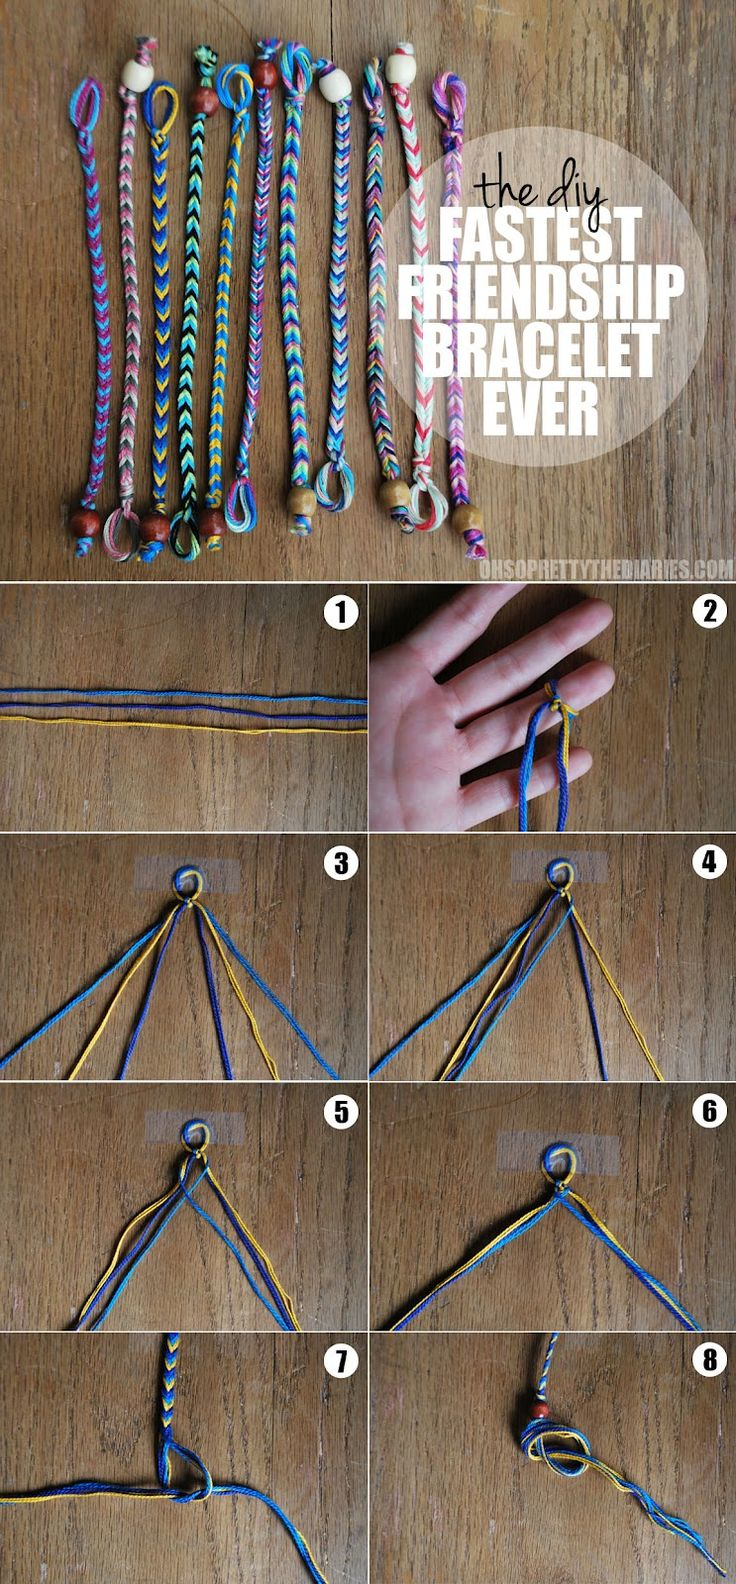 best youth group ideas images on pinterest good ideas